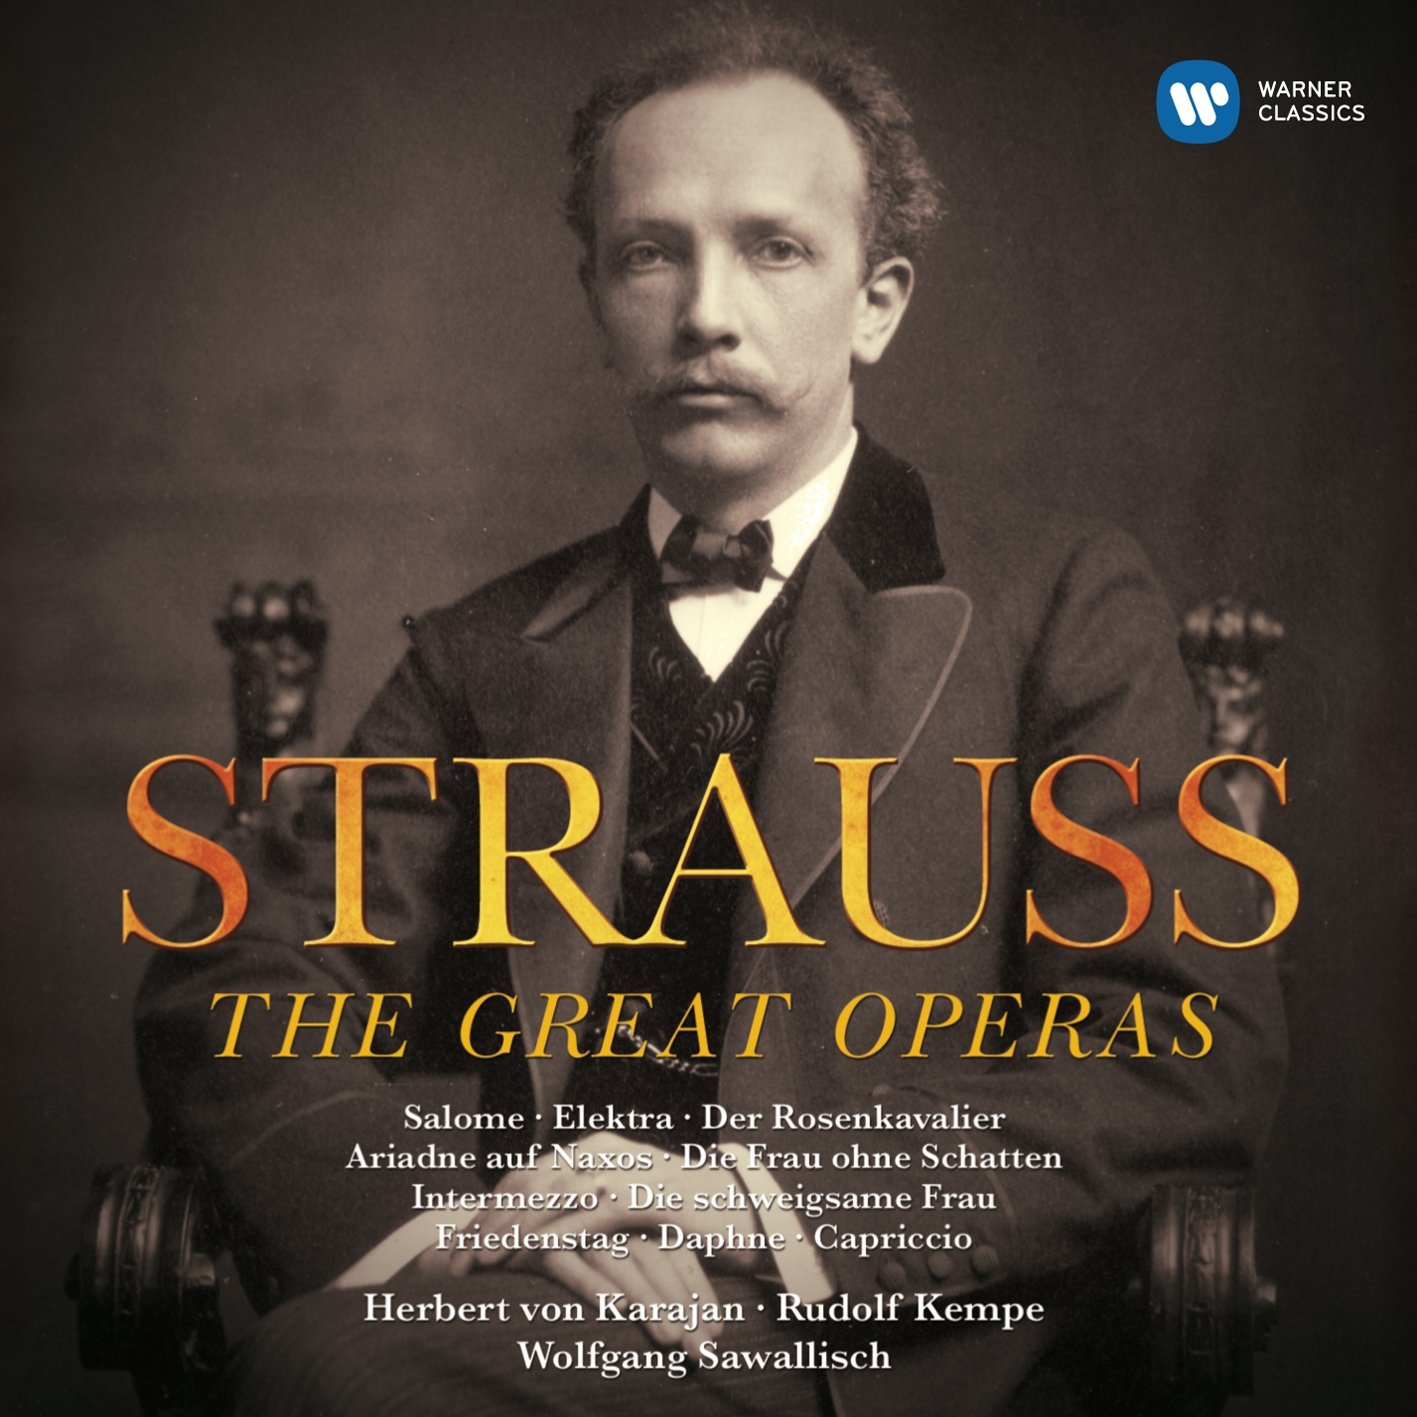 R. Strauss: The Great Operas (22 CD) by Parlophone